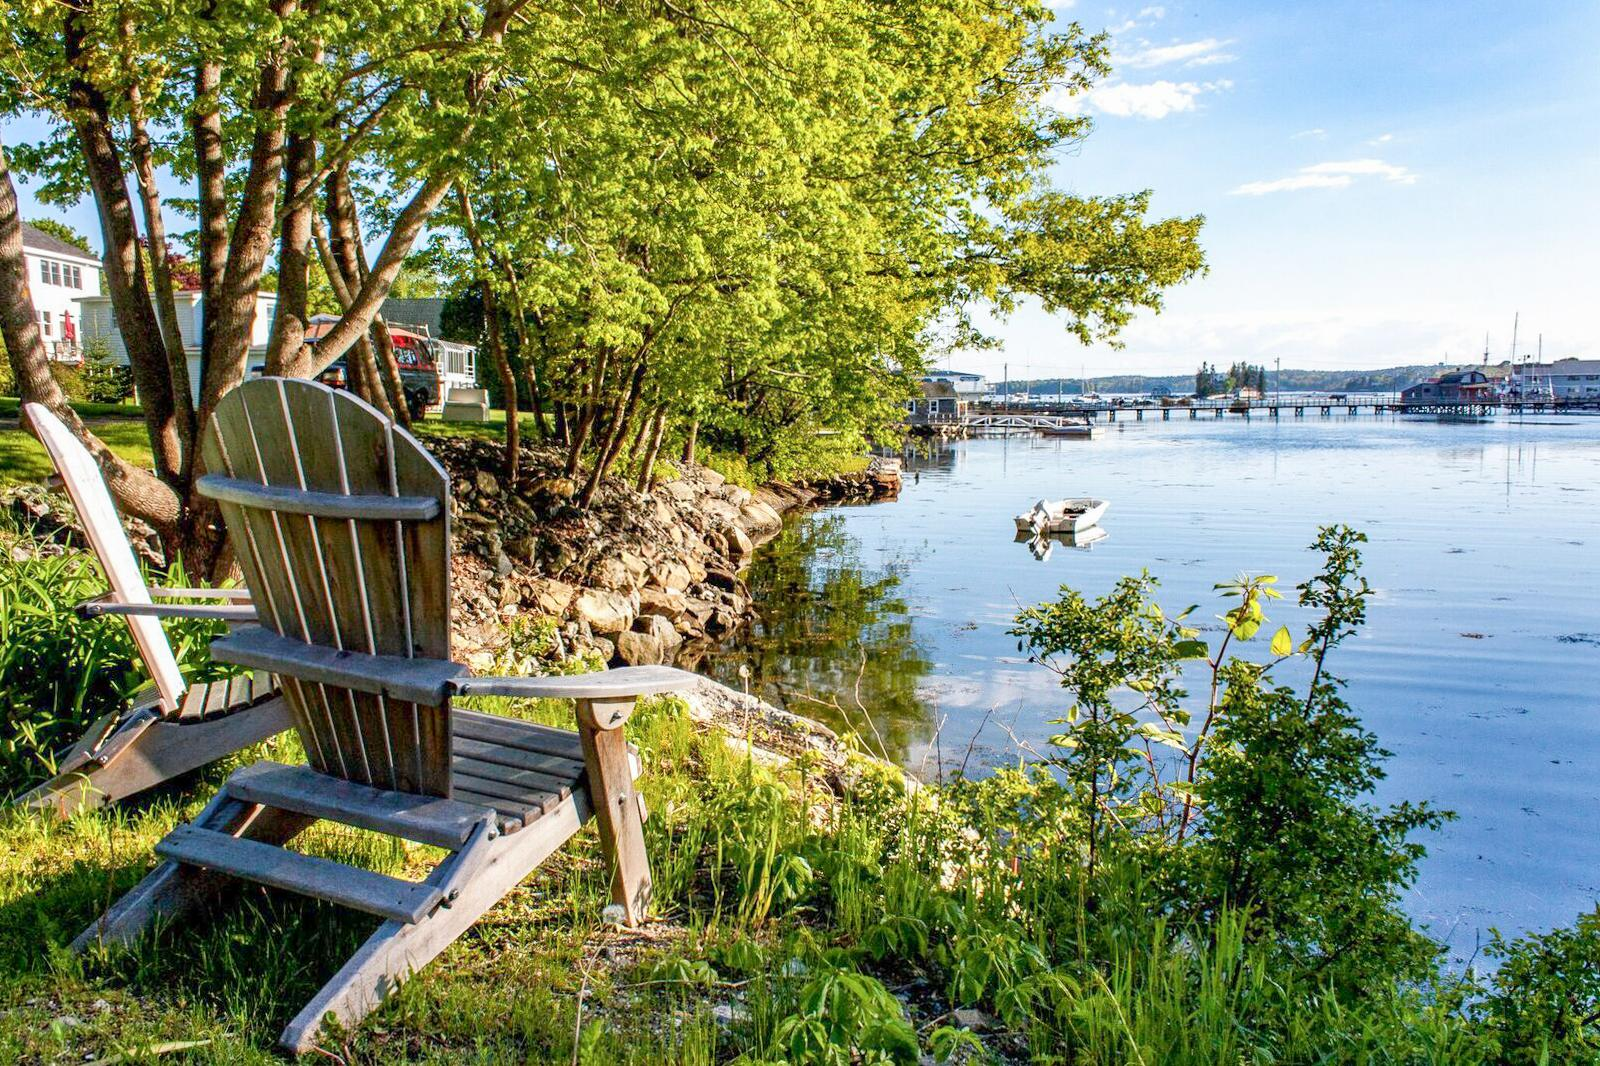 Welcome to Boothbay Harbor! Have your morning coffee and enjoy the views of Snug Harbor.